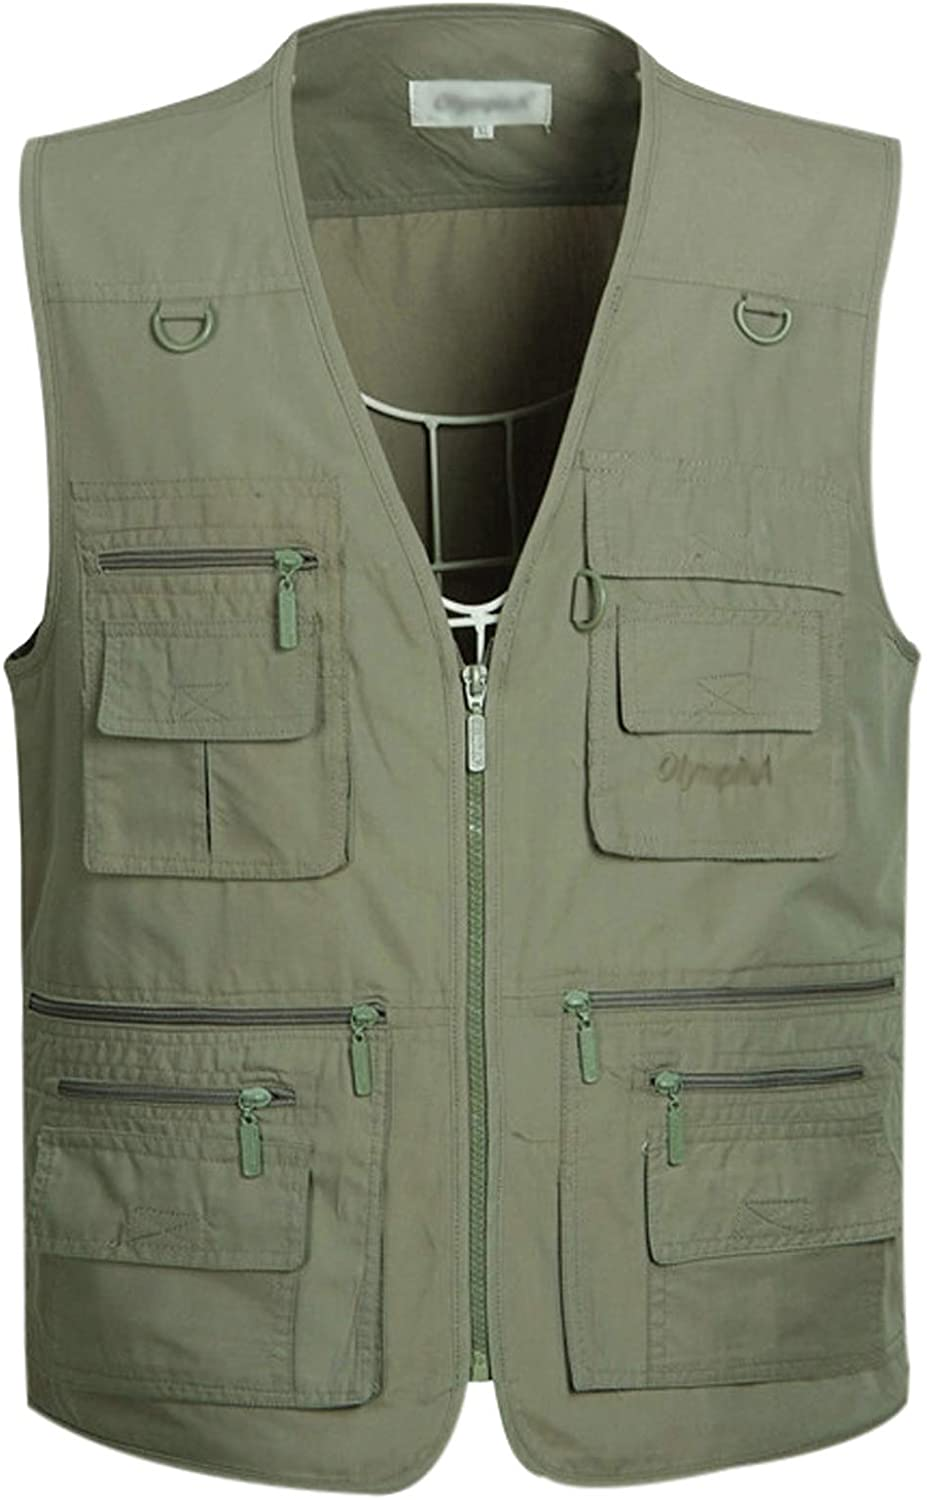 Gihuo Mens Summer Outdoor Work Safari Fishing Travel Vest with Pockets